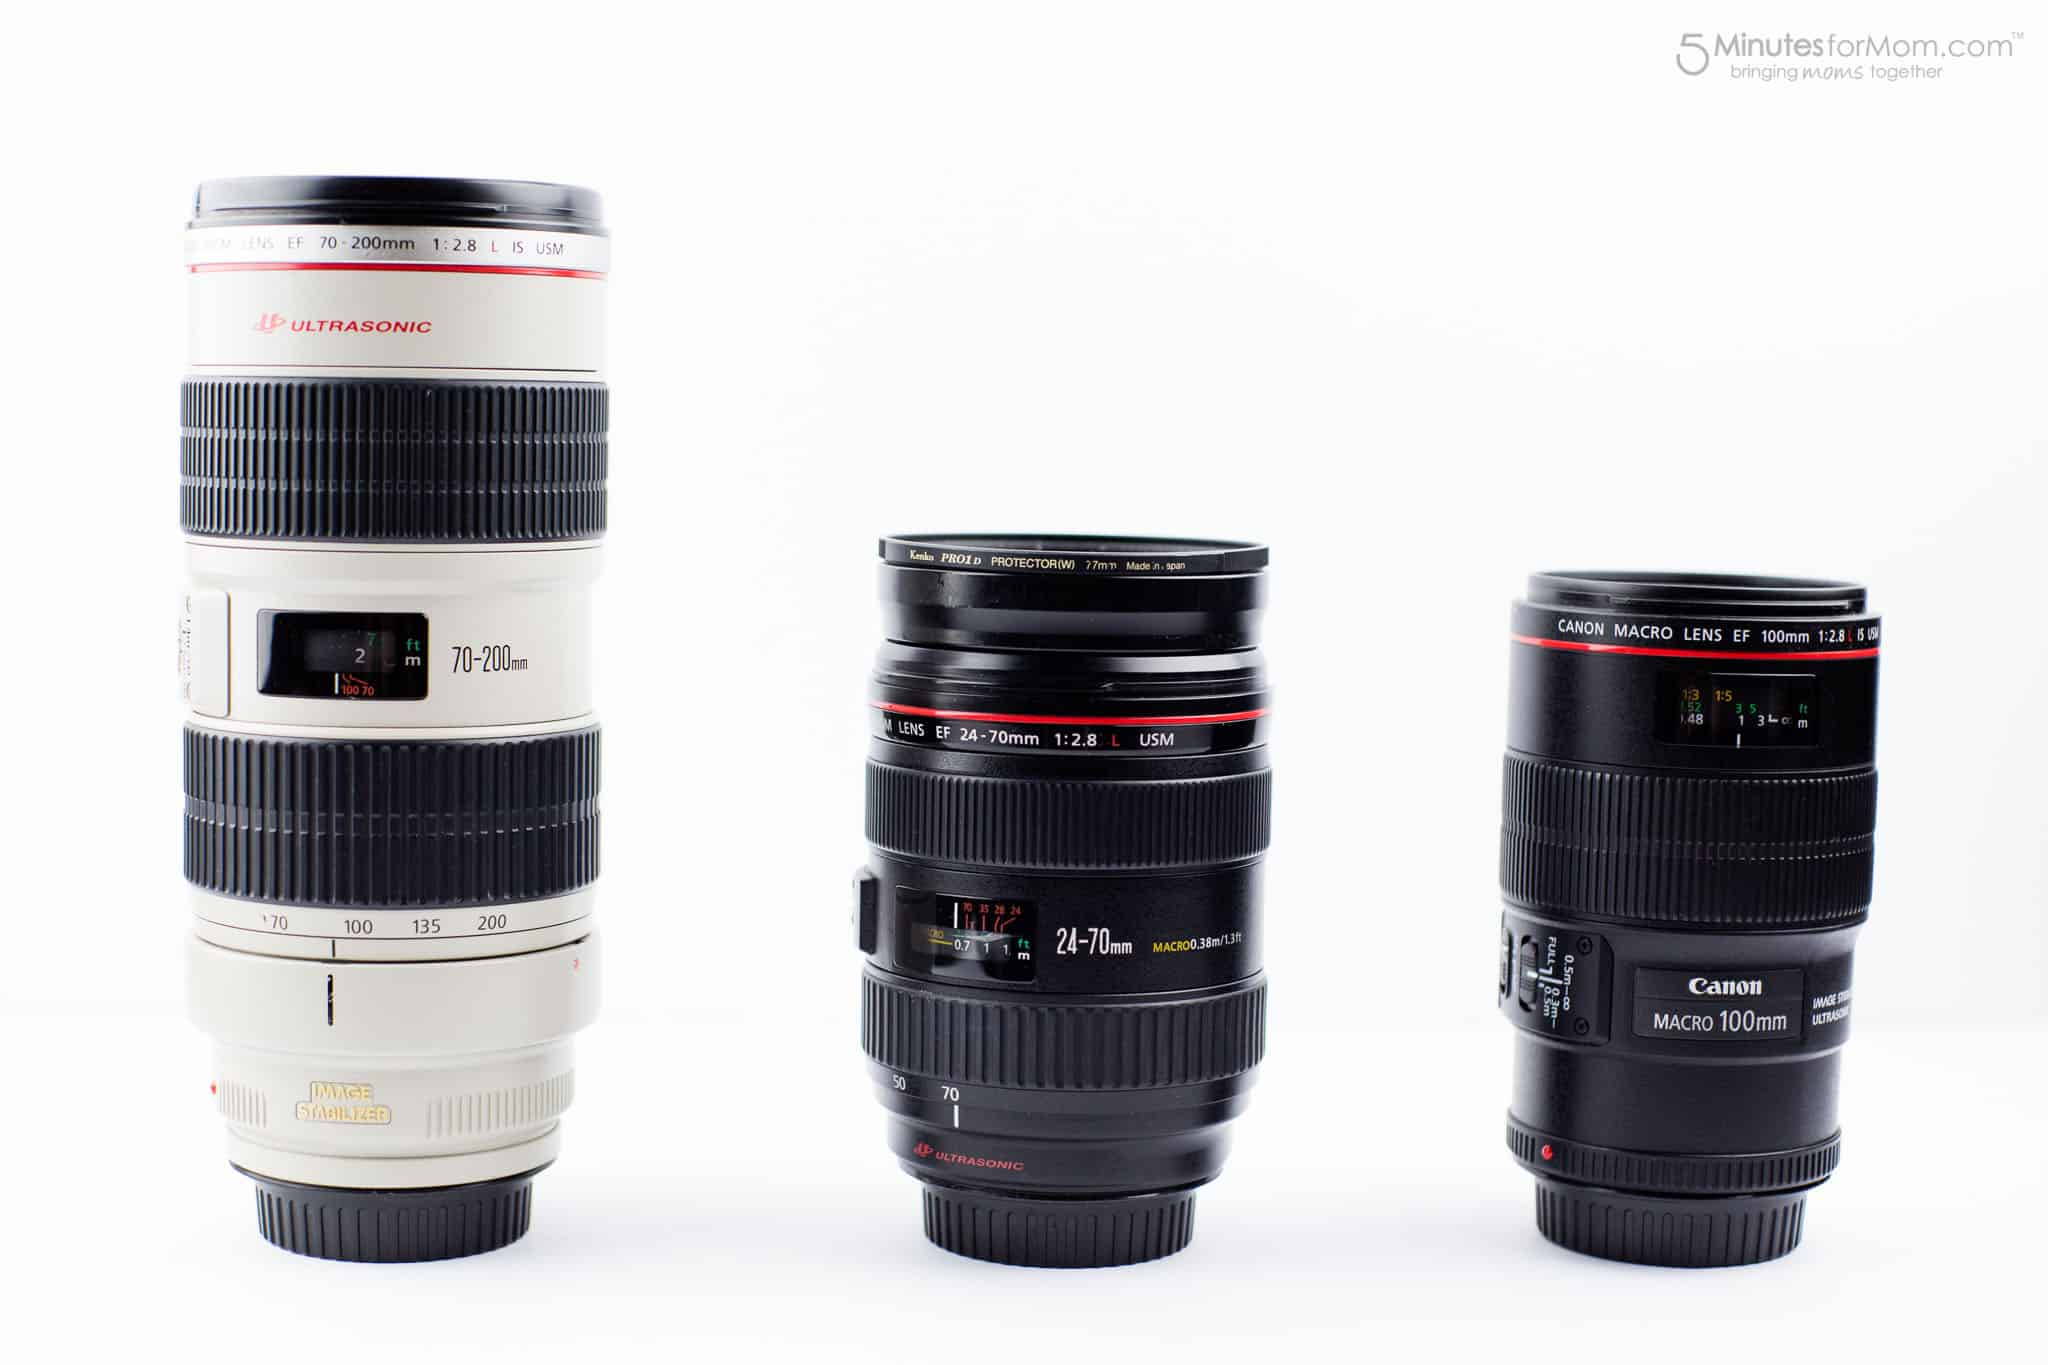 Canon camera lenses